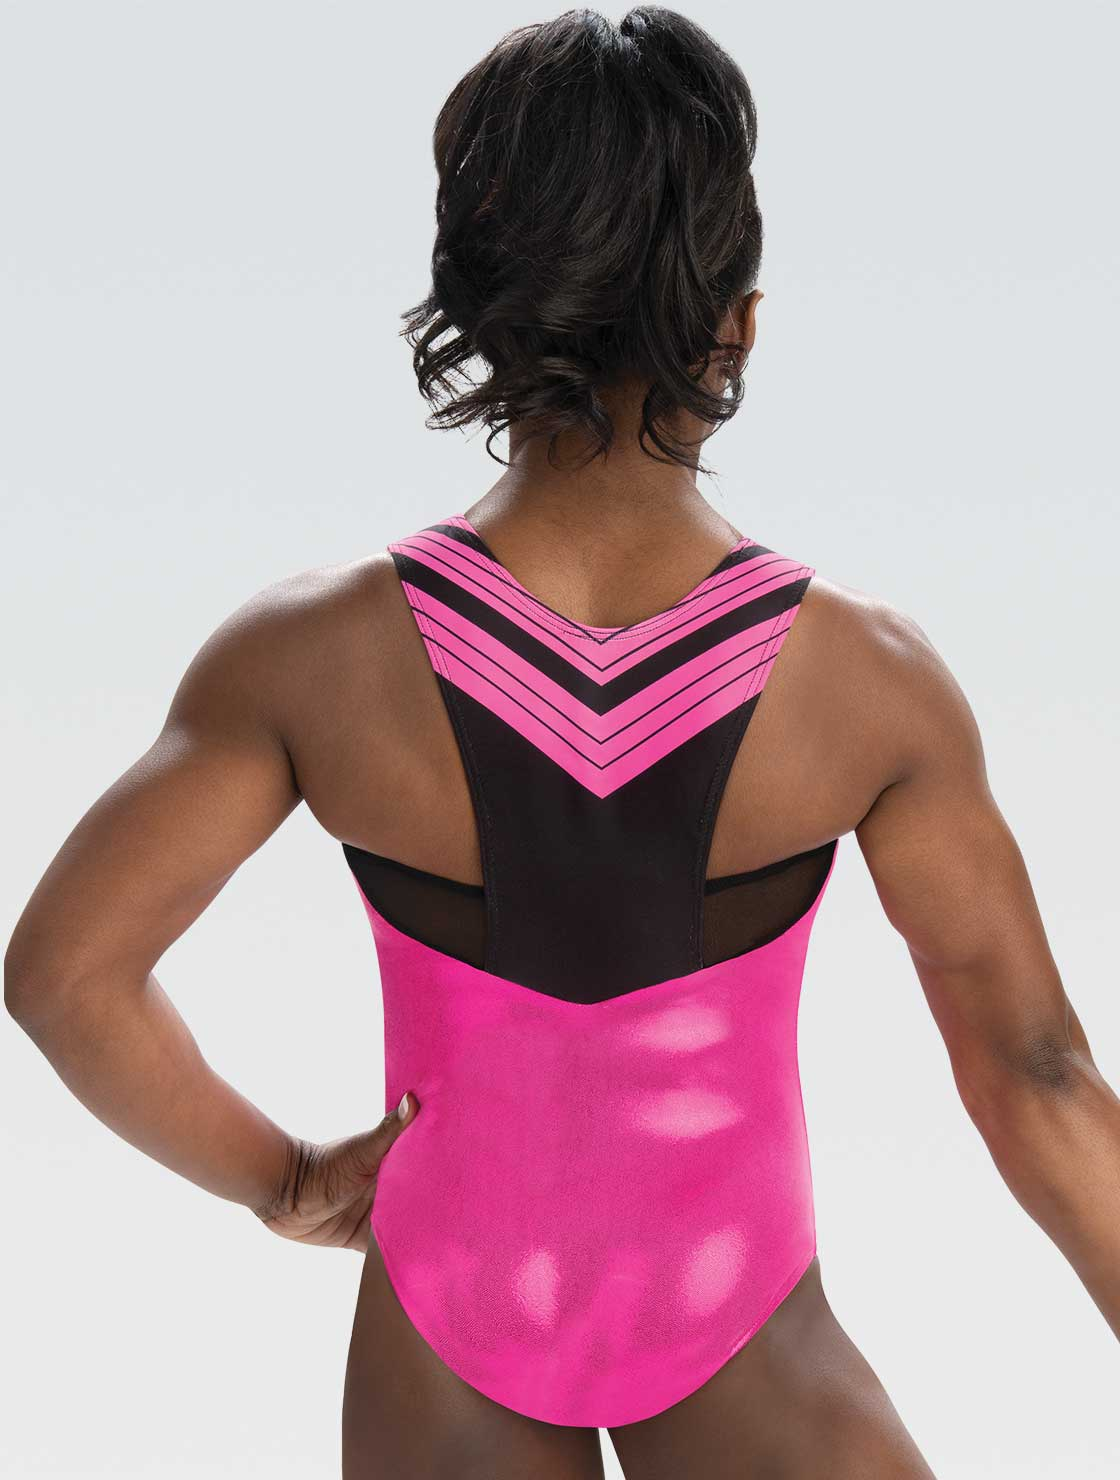 GK 3850 Berry Vibe Leotard